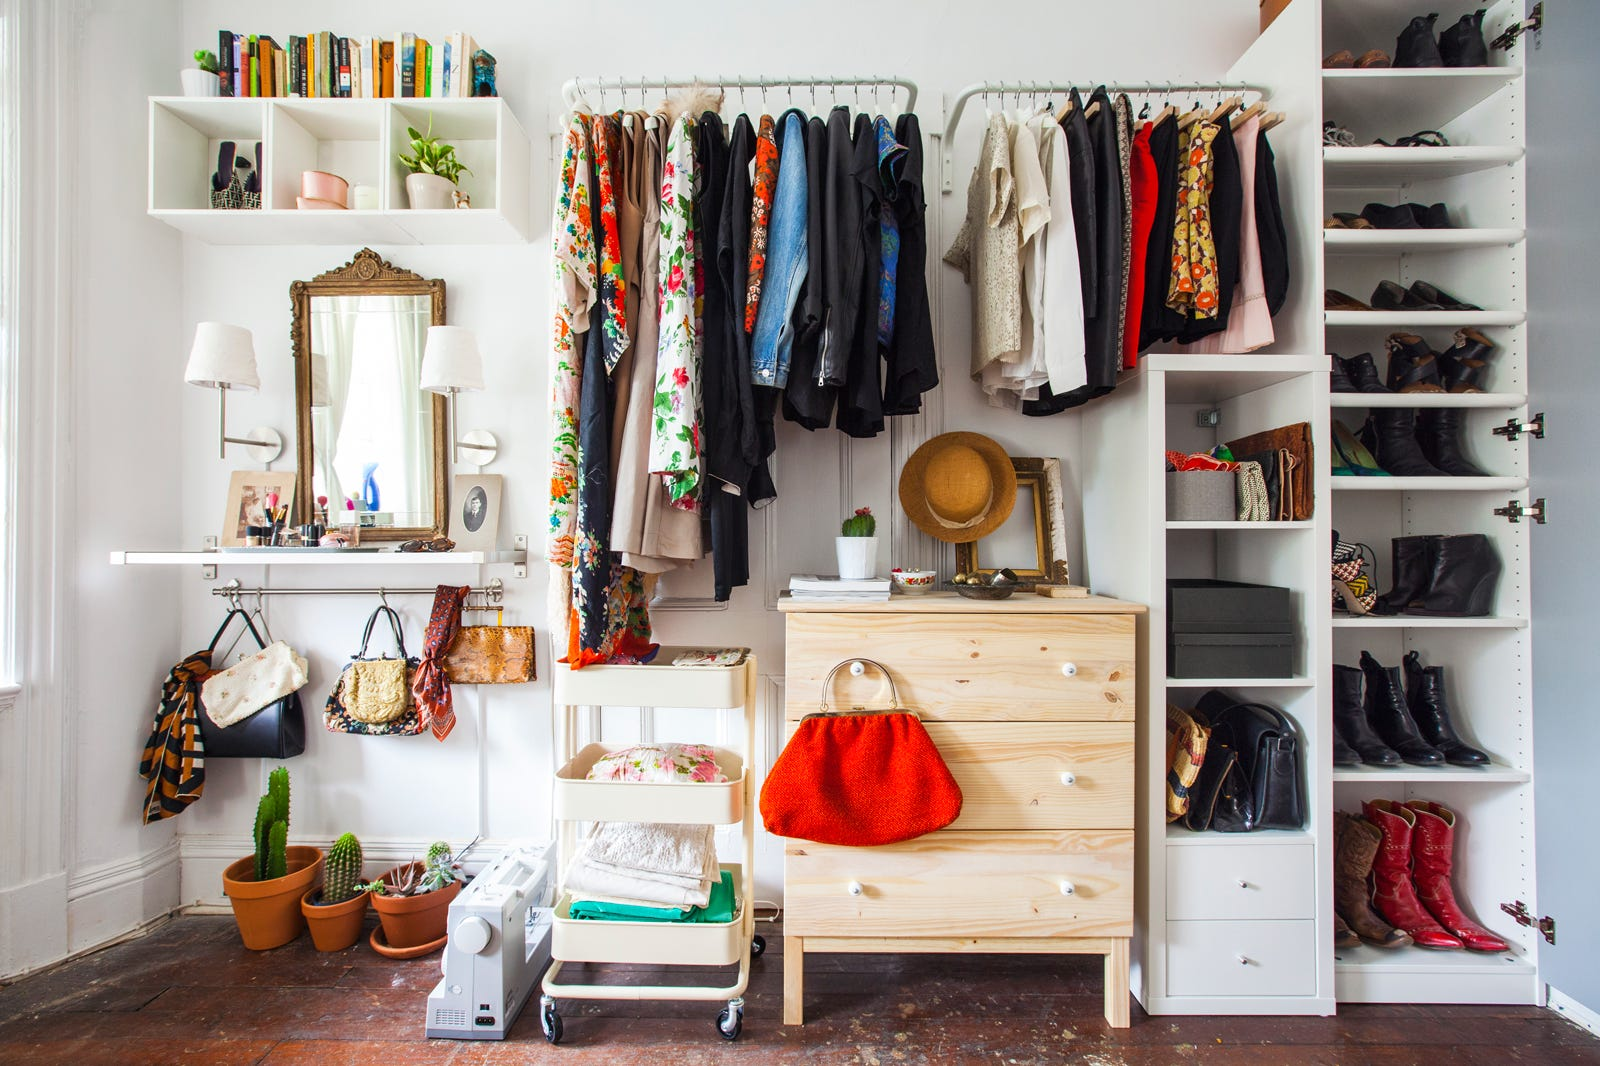 How To Clean Your Closet closet organization ideas - clothing storage solutions